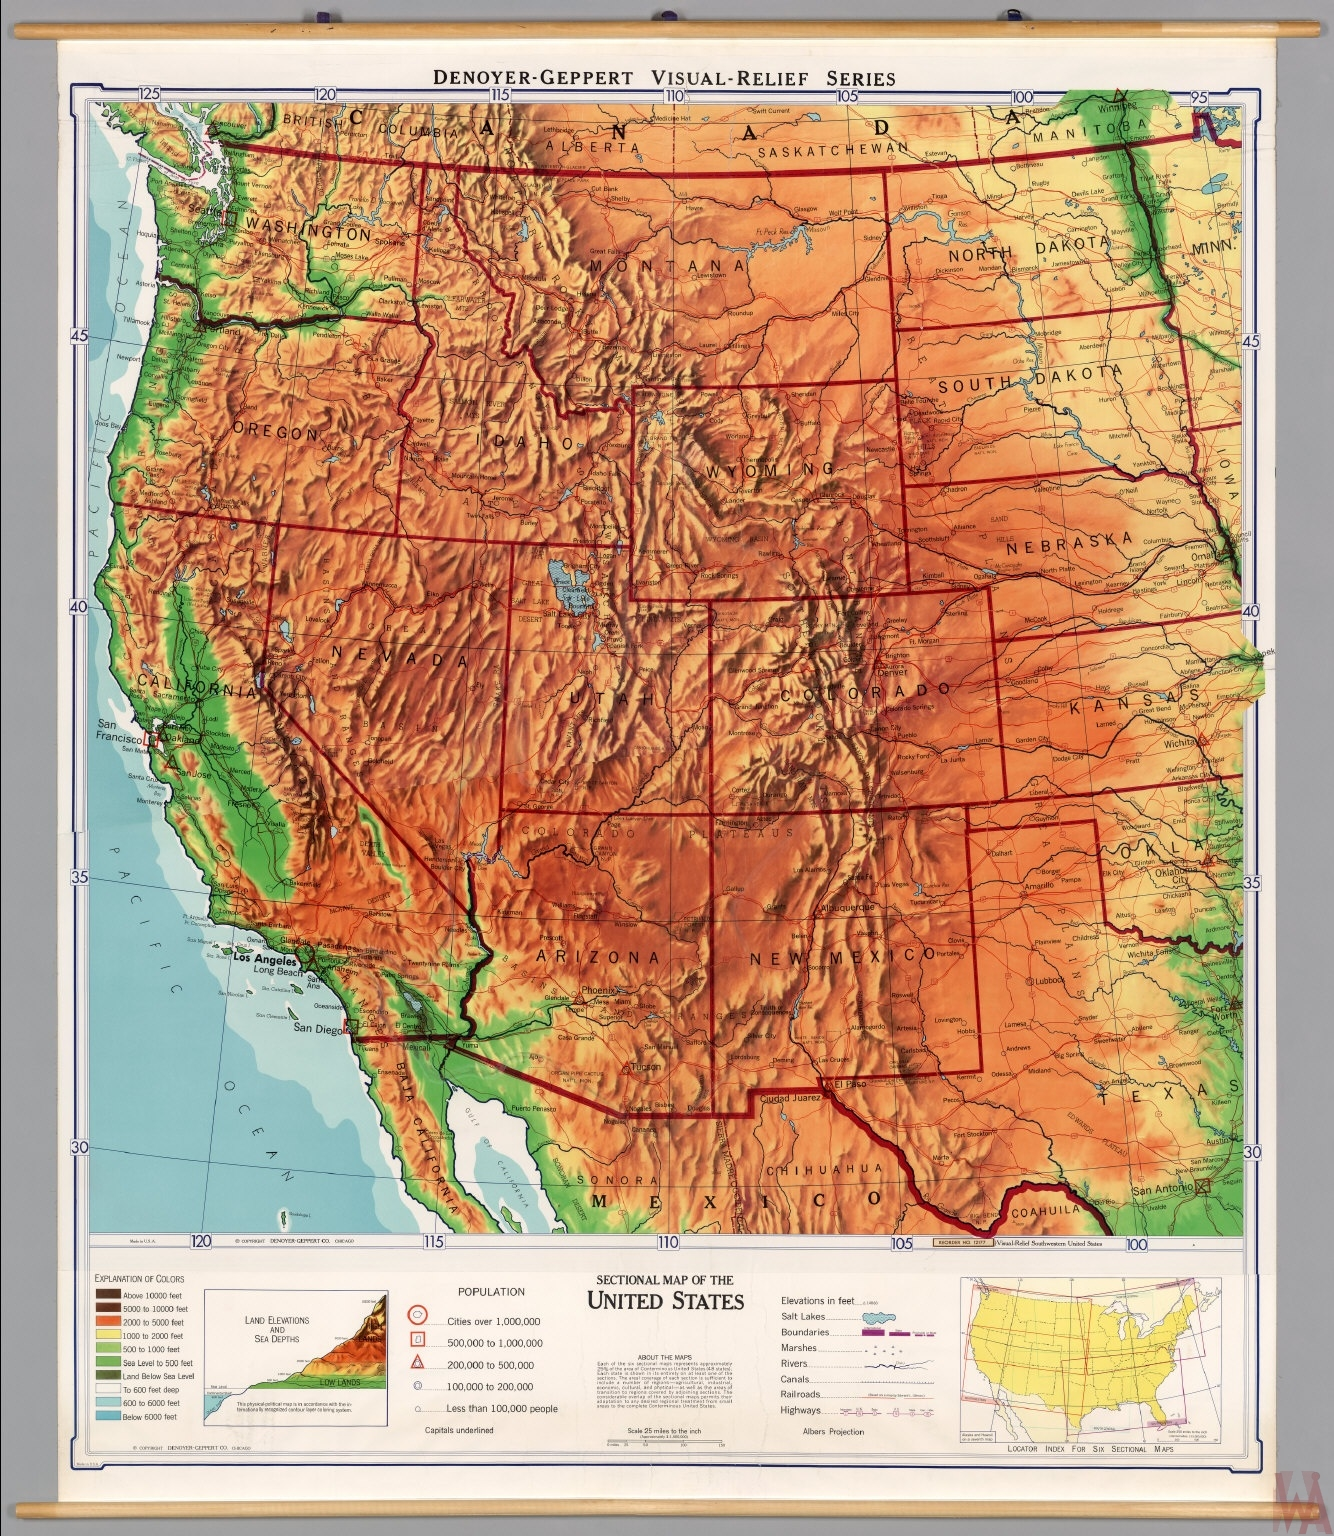 Population map West USA